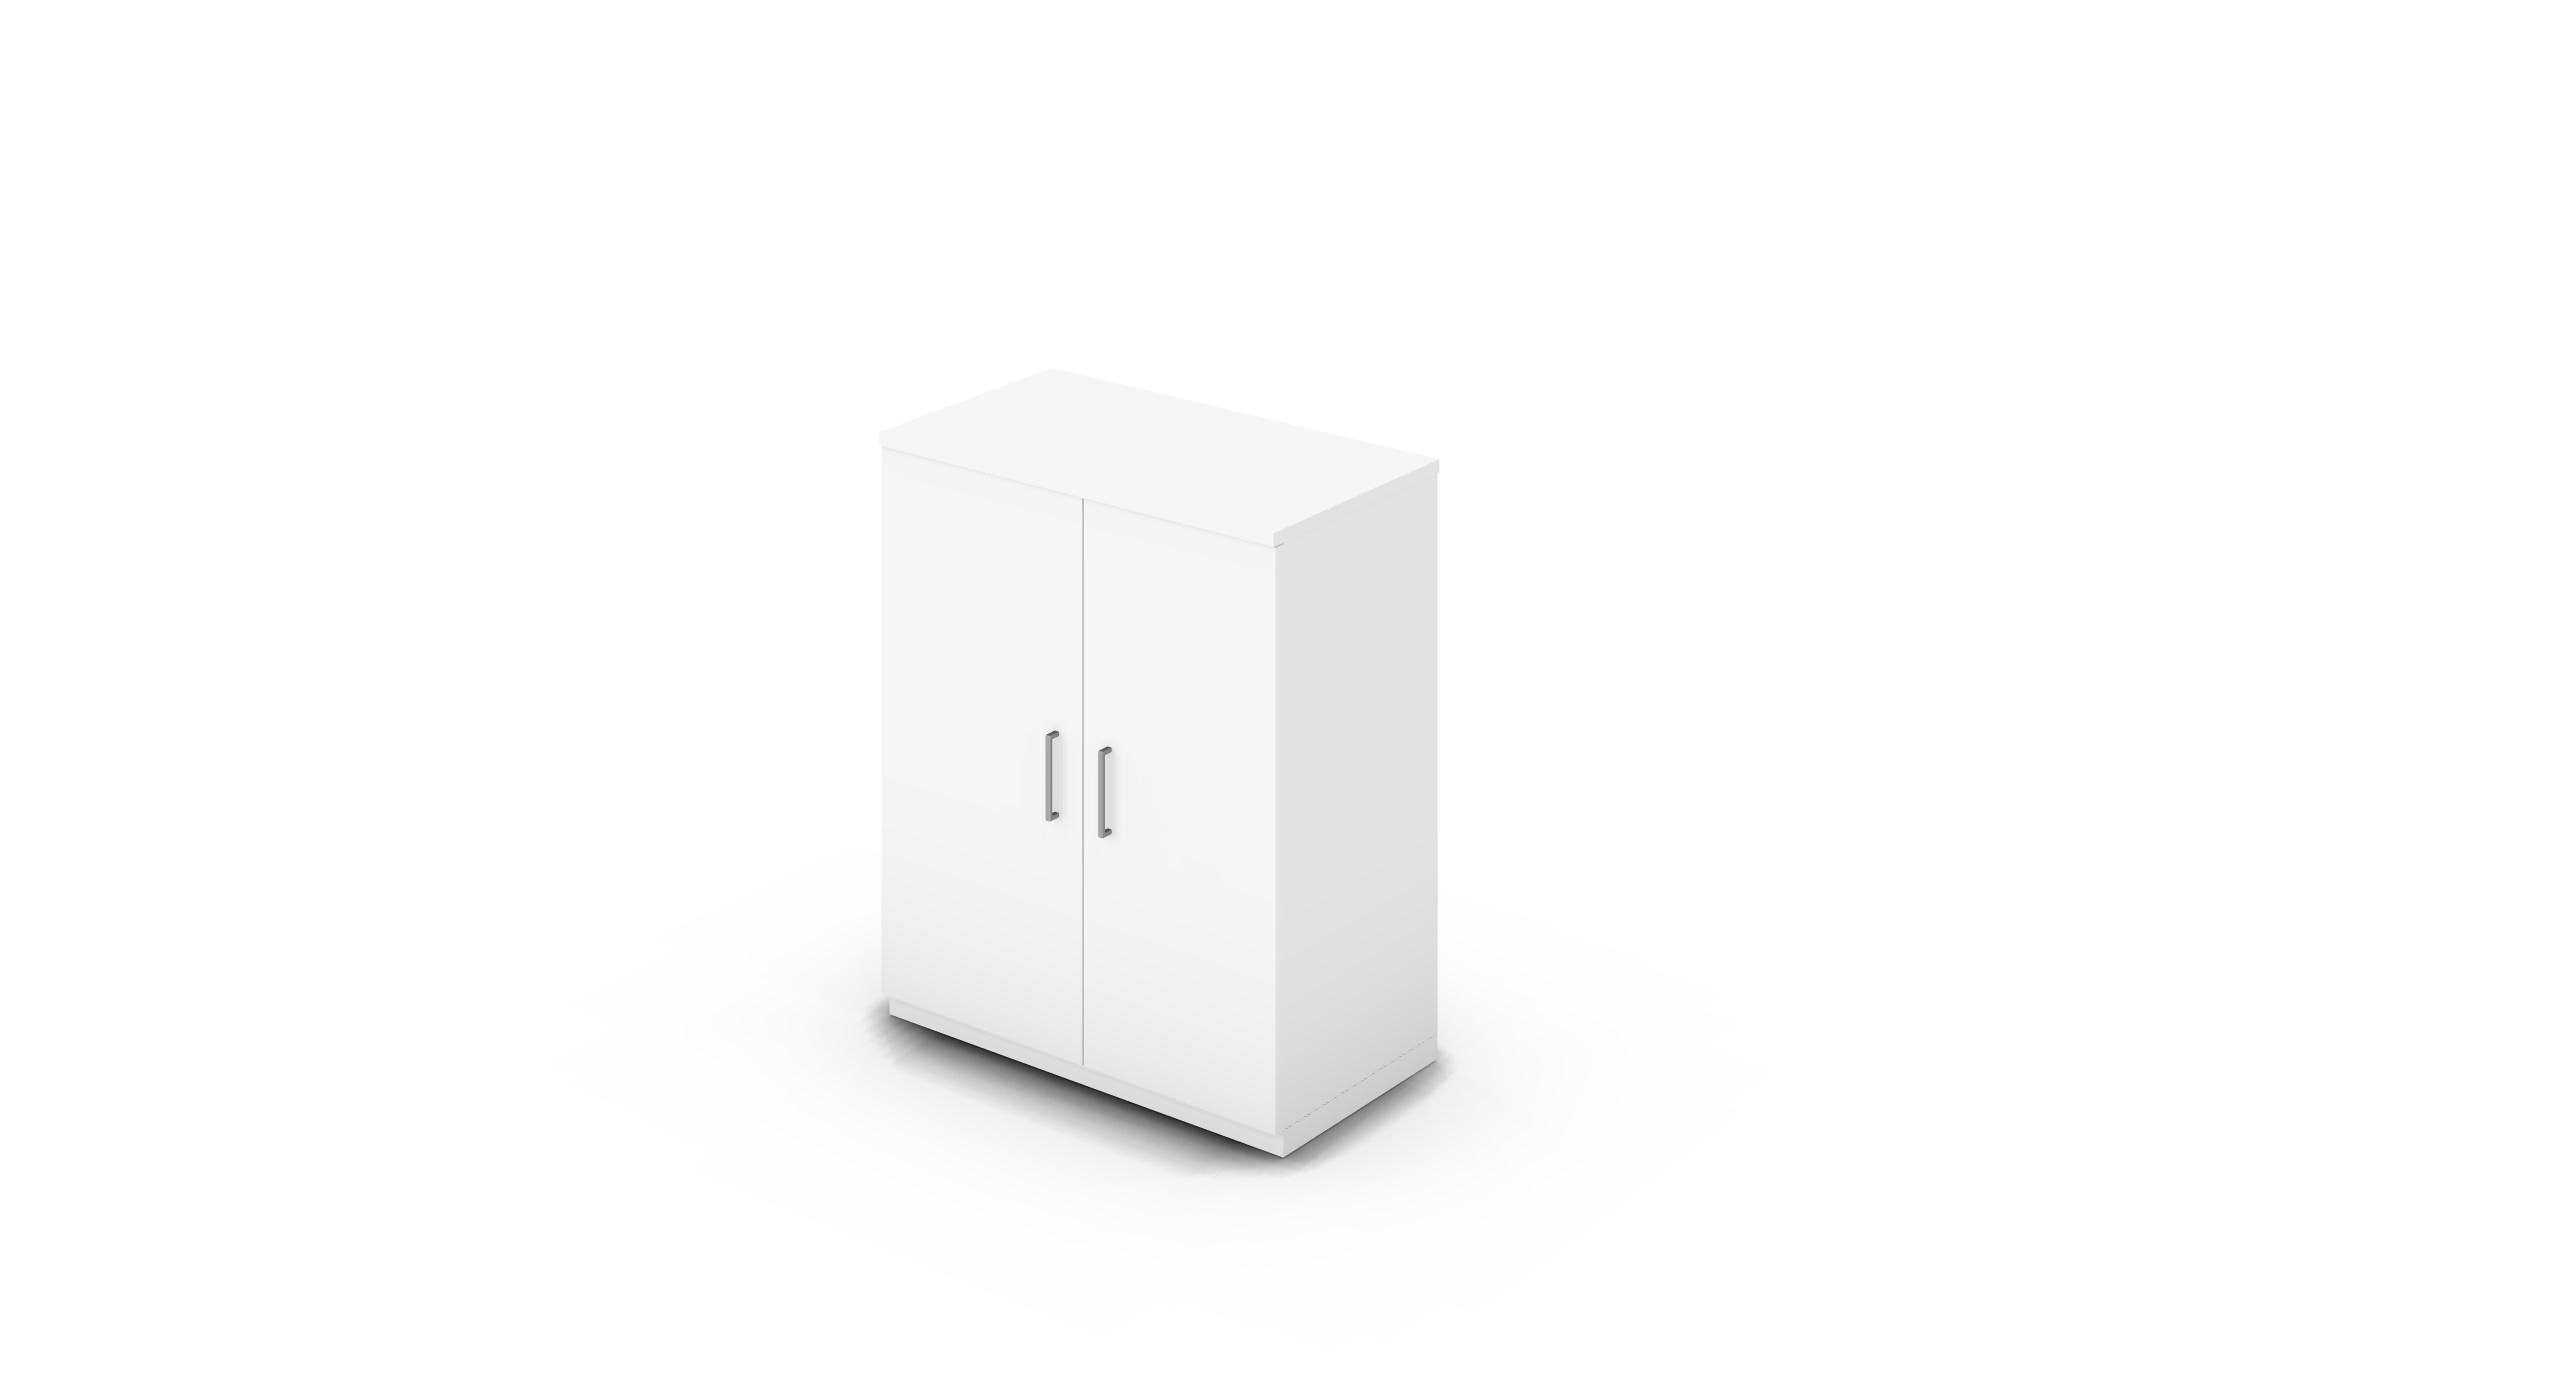 Cabinet_800x450x1125_HD_White_Bar_Square_NoCylinder